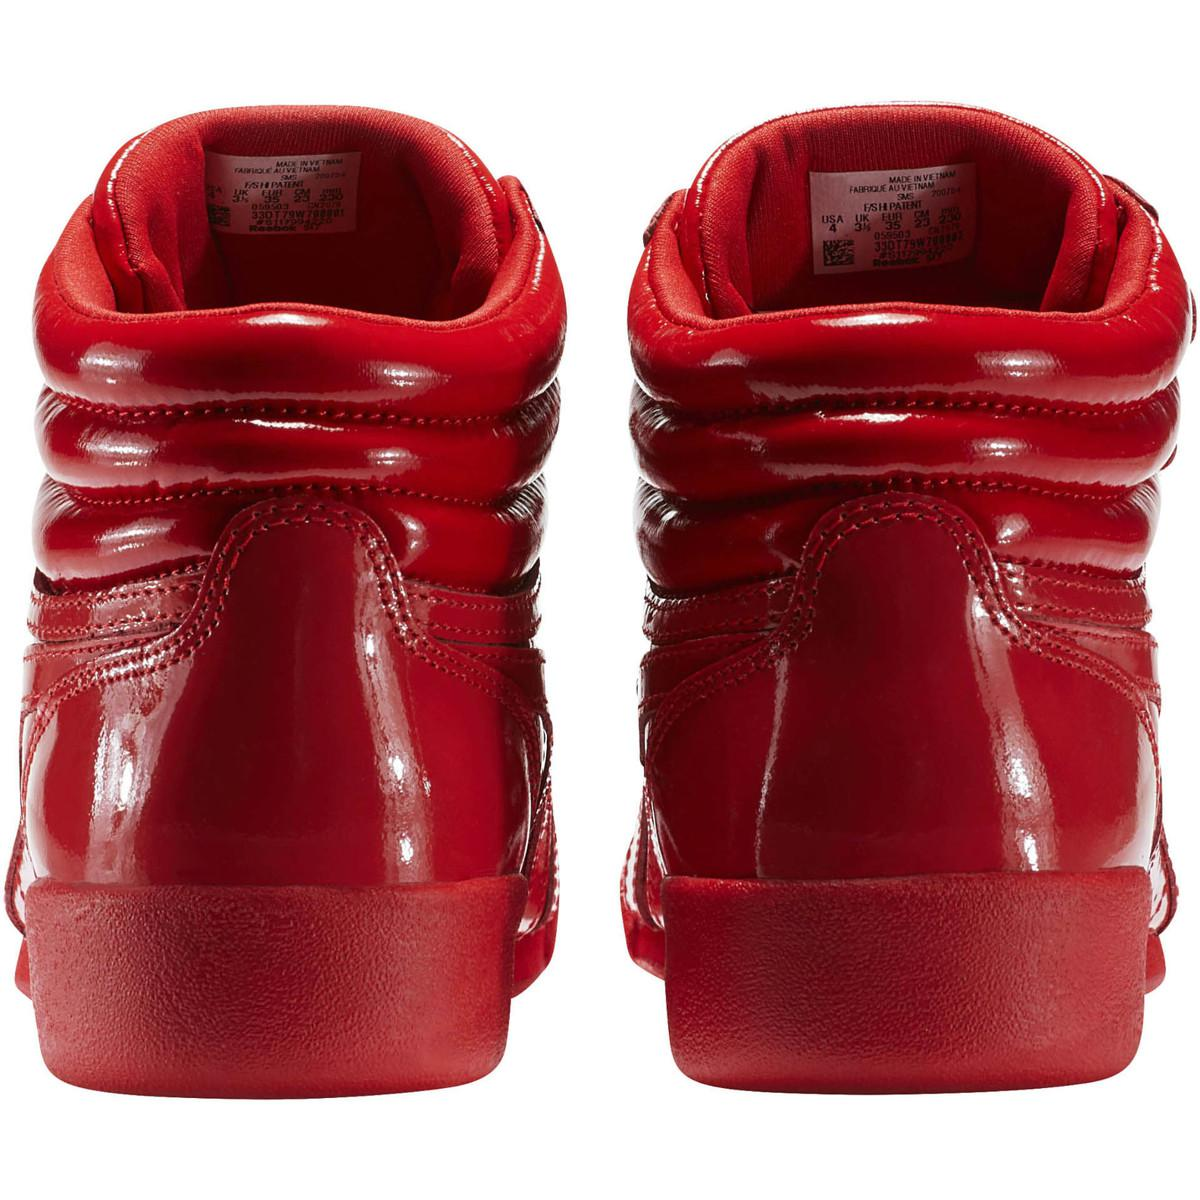 Reebok Freestyle Hi Patent Leather Cn2078 Women s High Boots In Red ... c85ba82f2